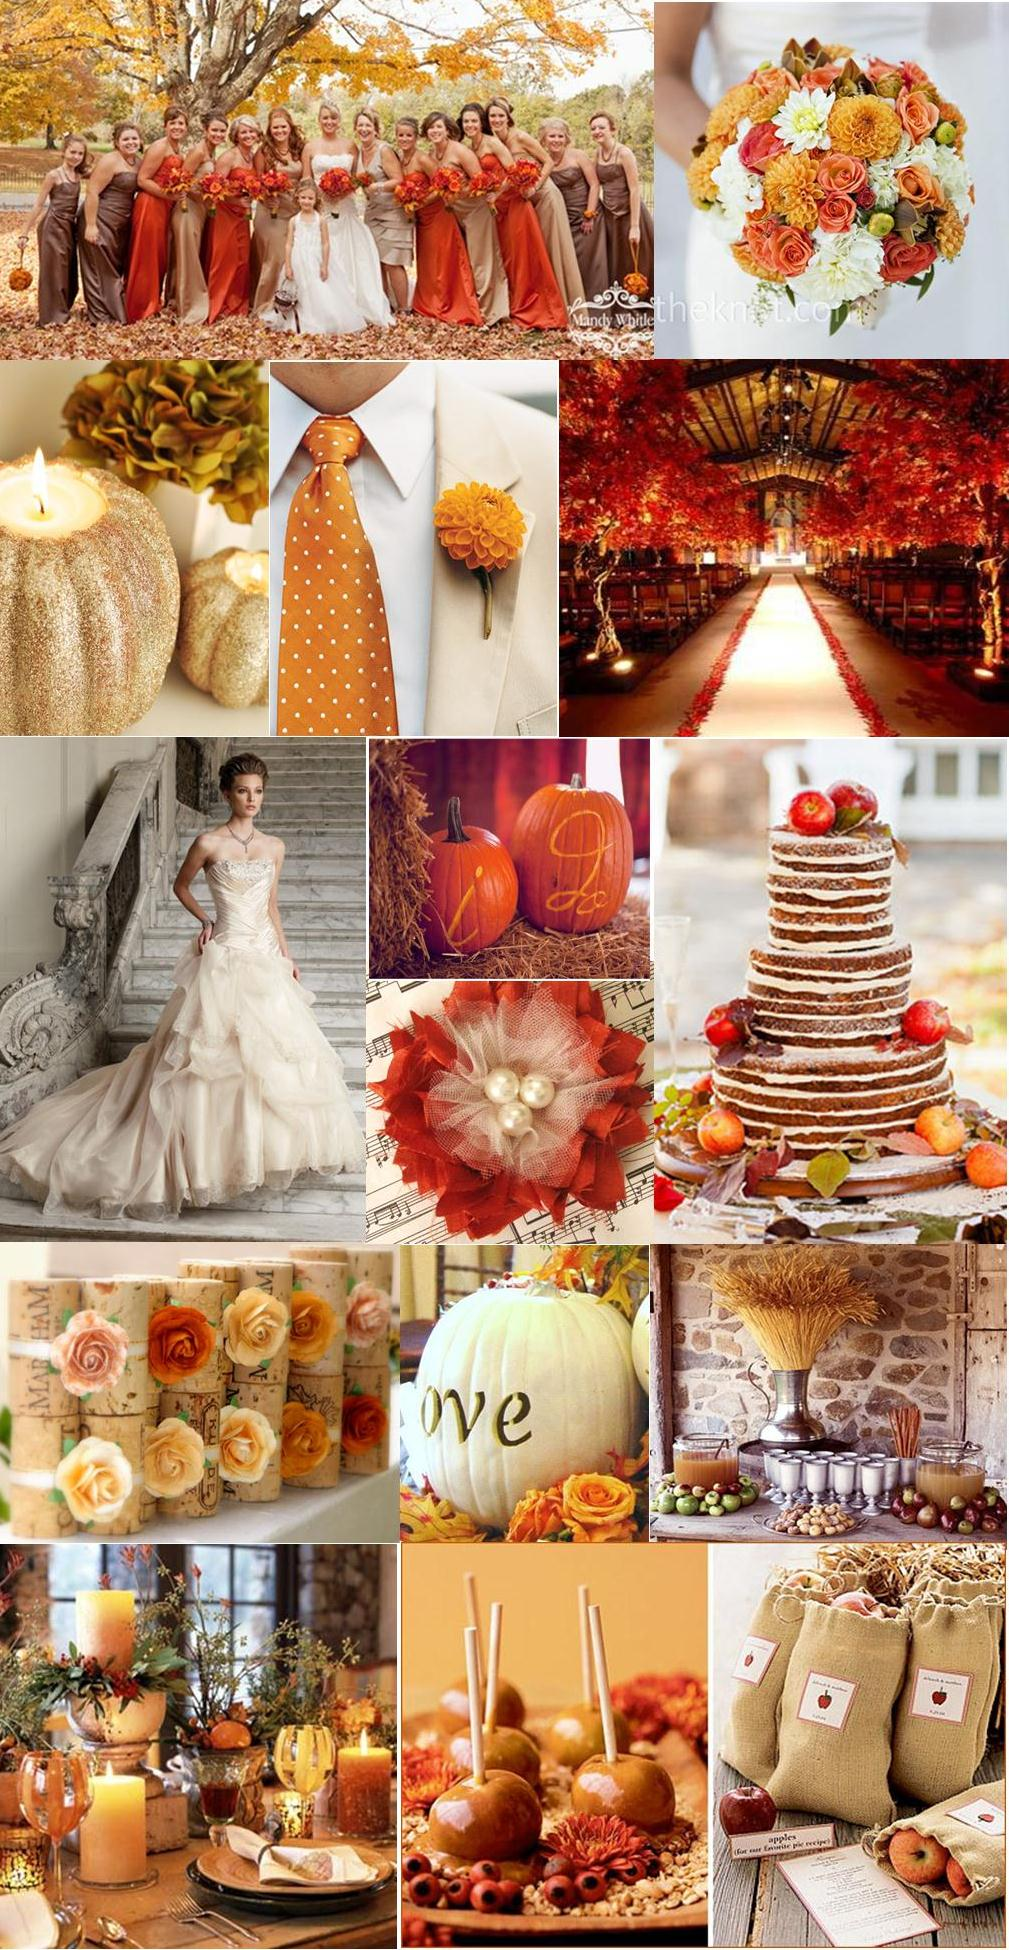 wedding fall decorations wedding wednesdays autumn chic thetwentysomethingblog 9450